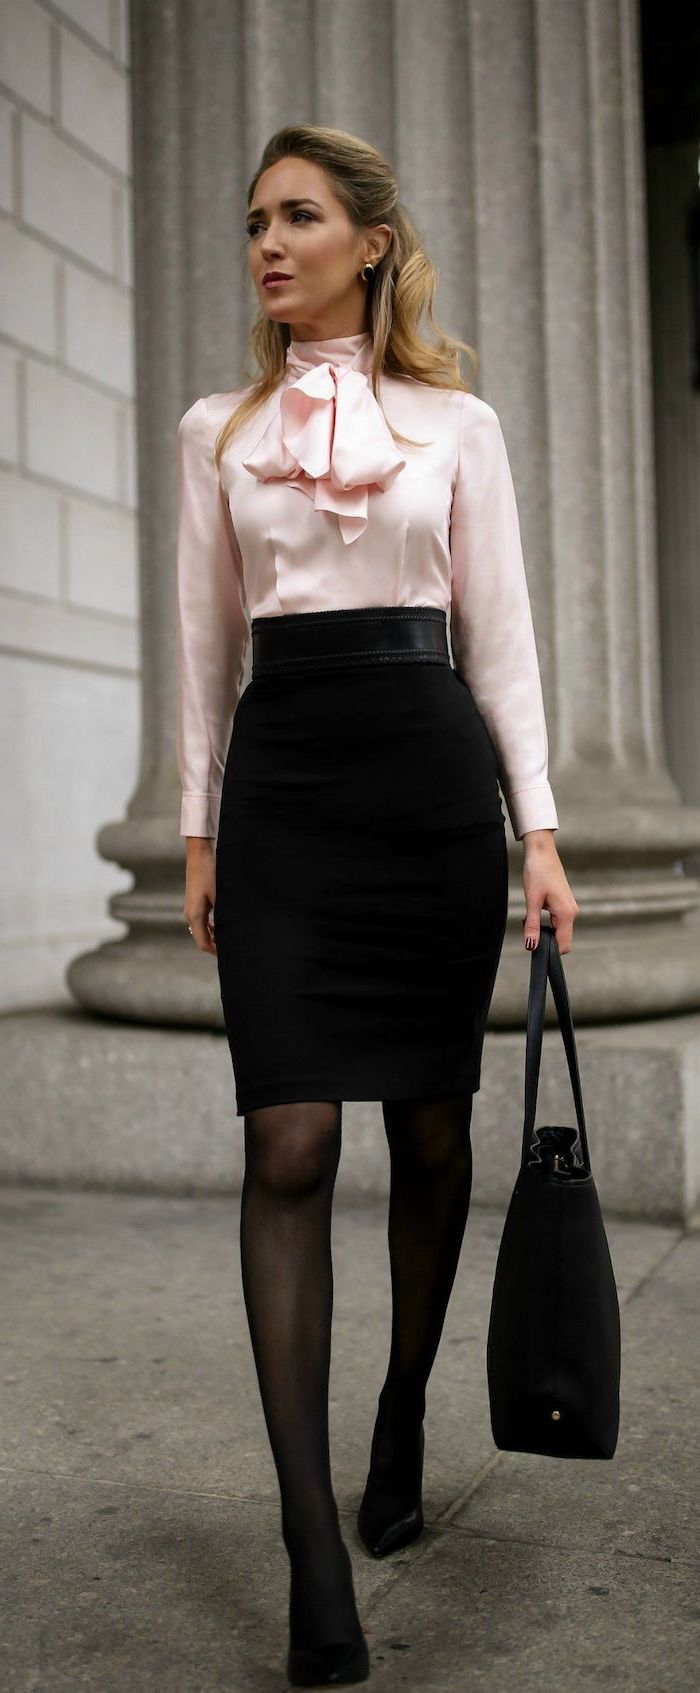 pink satin shirt, black pencil skirt, business wear for women, leather bag, black tights and shoes